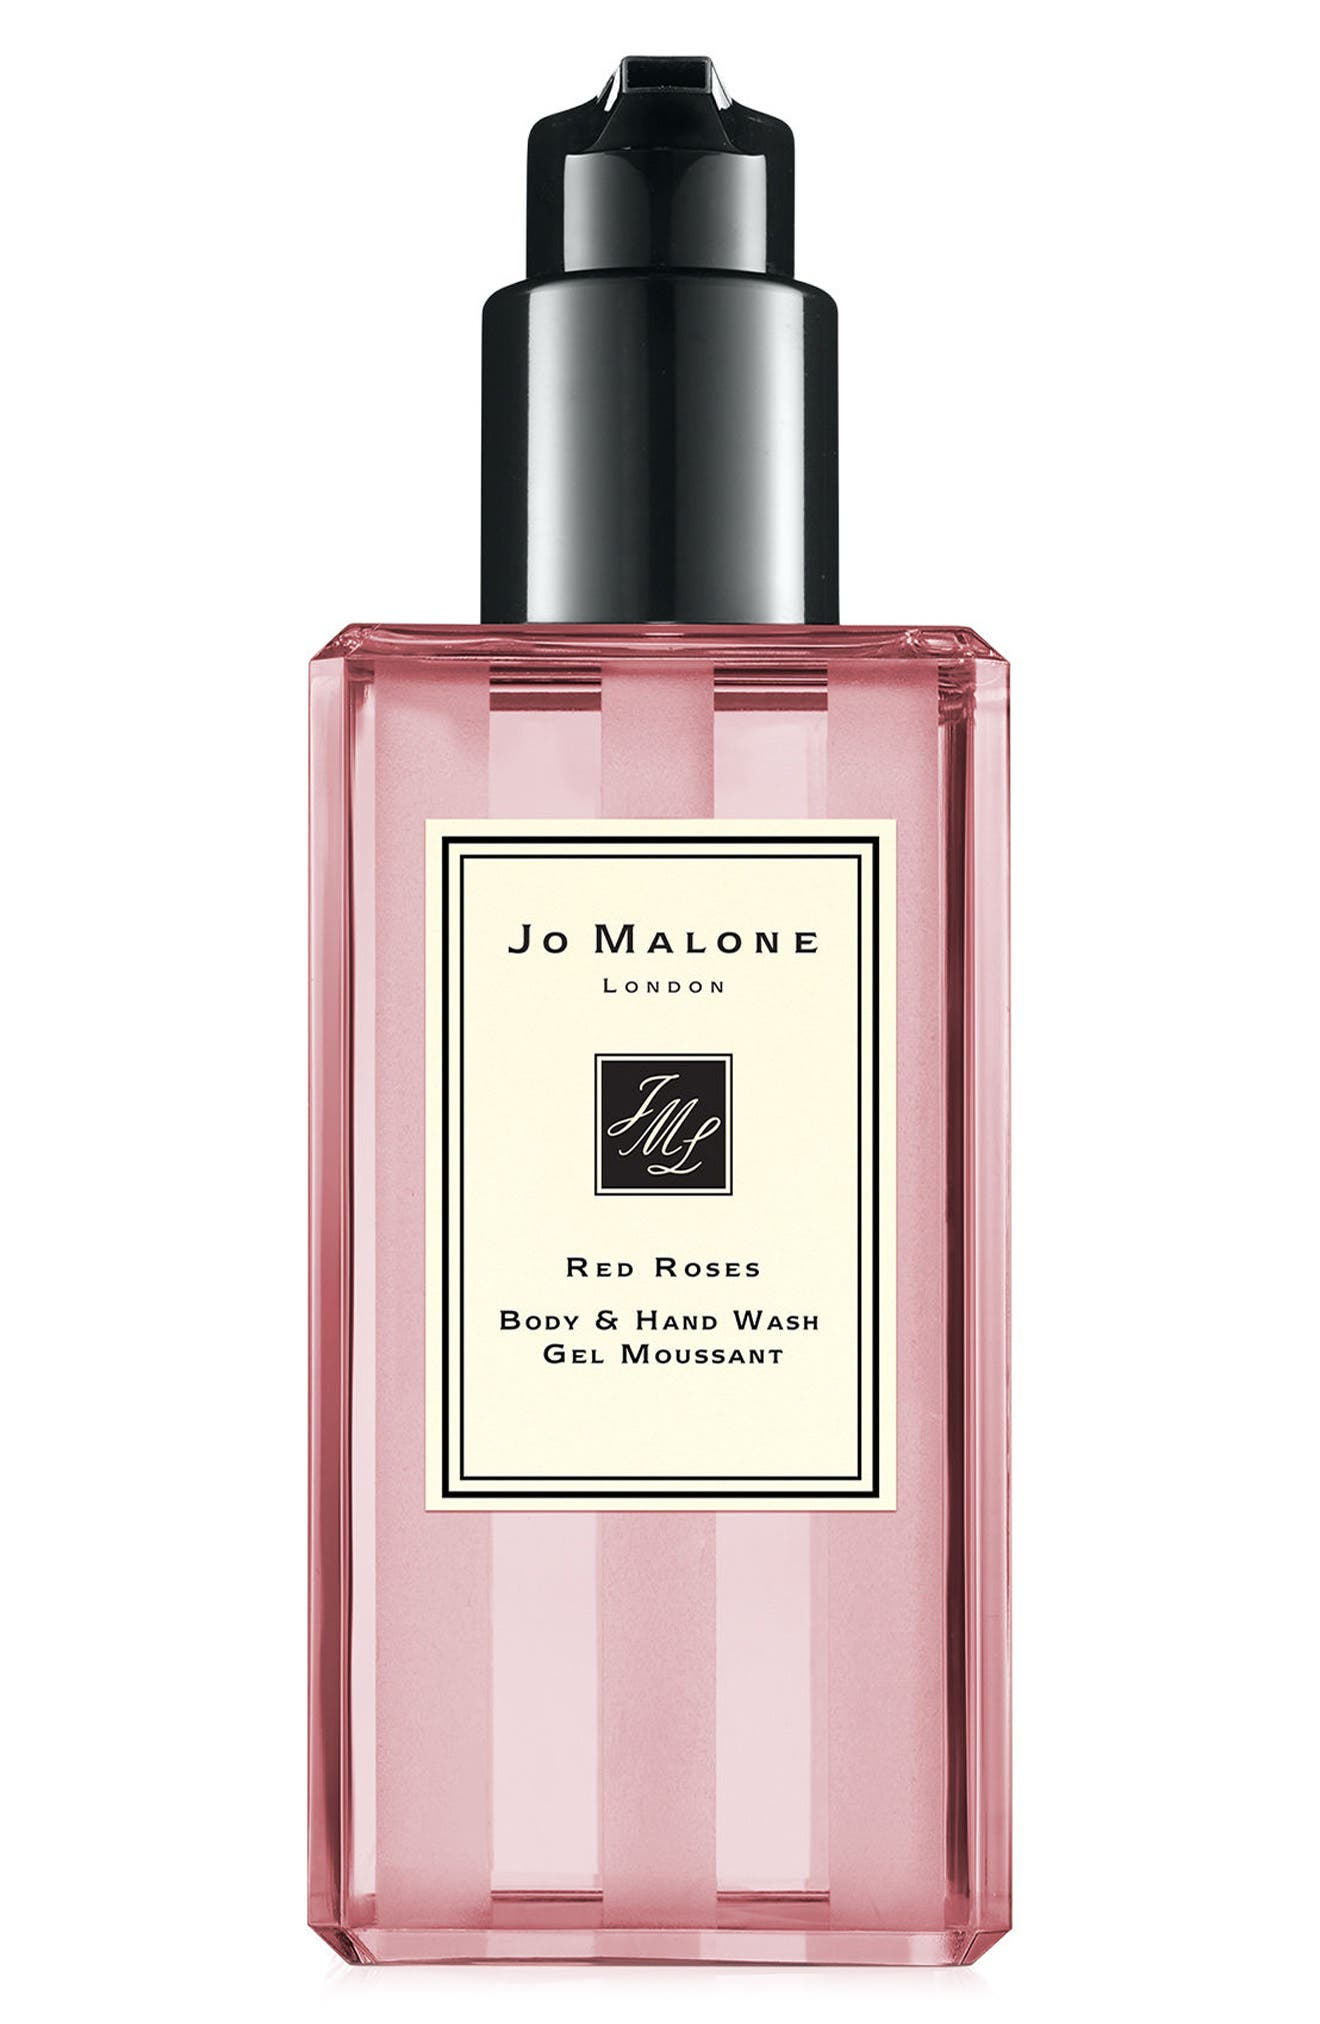 Jo Malone London™ 'Red Roses' Body & Hand Wash